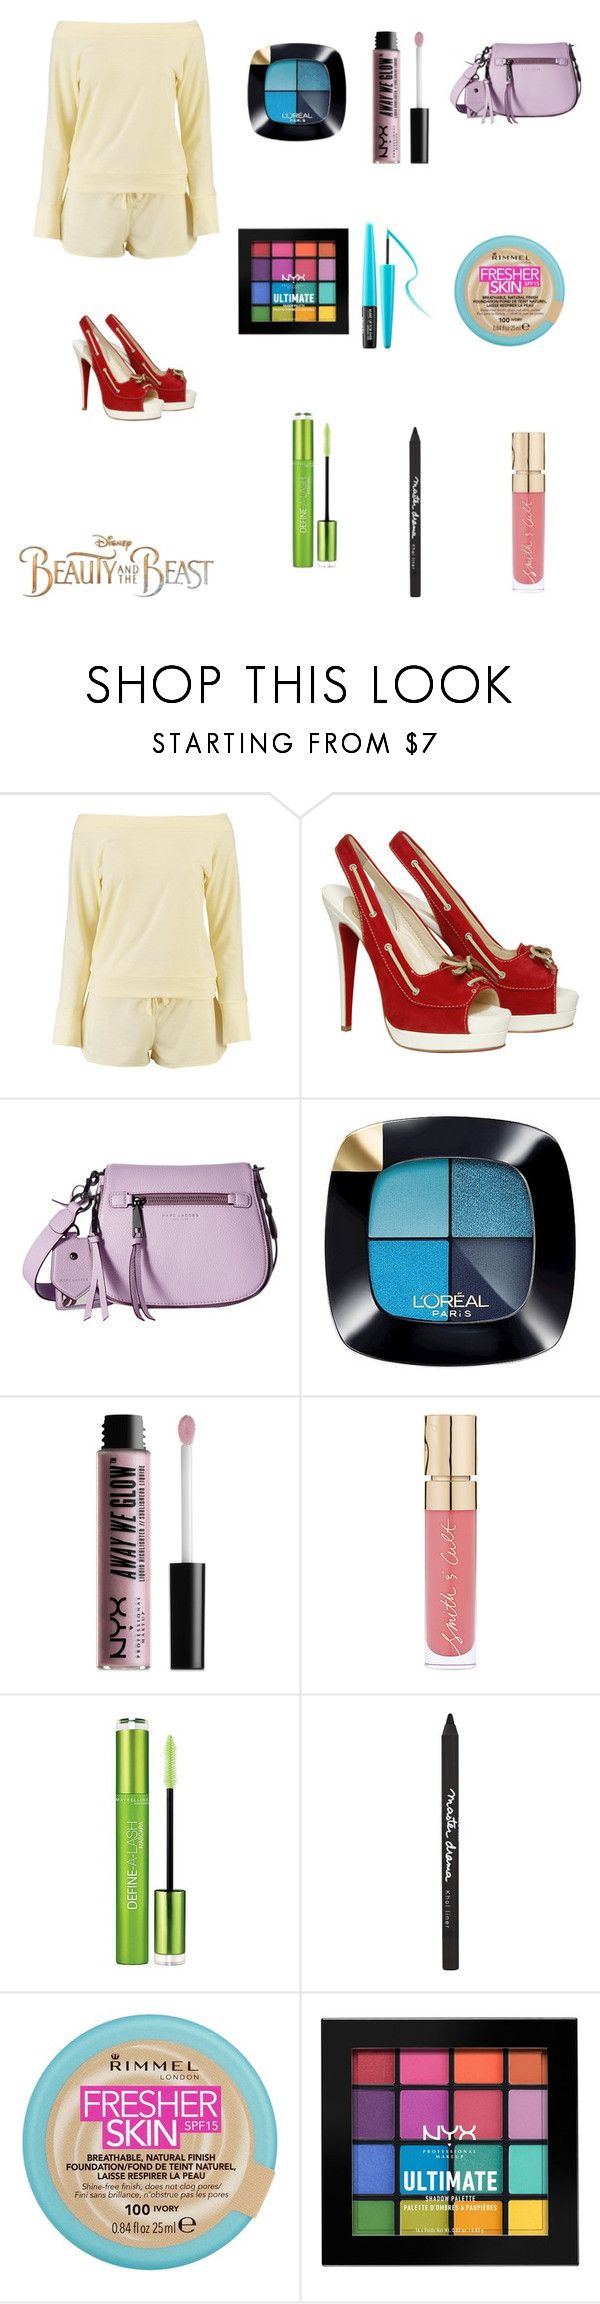 """""""Cinema date"""" by ceiraxox ❤ liked on Polyvore featuring Disney, Boohoo, Christian Louboutin, Marc Jacobs, L'Oréal Paris, NYX, Smith & Cult, Maybelline, Rimmel and MAKE UP FOR EVER"""